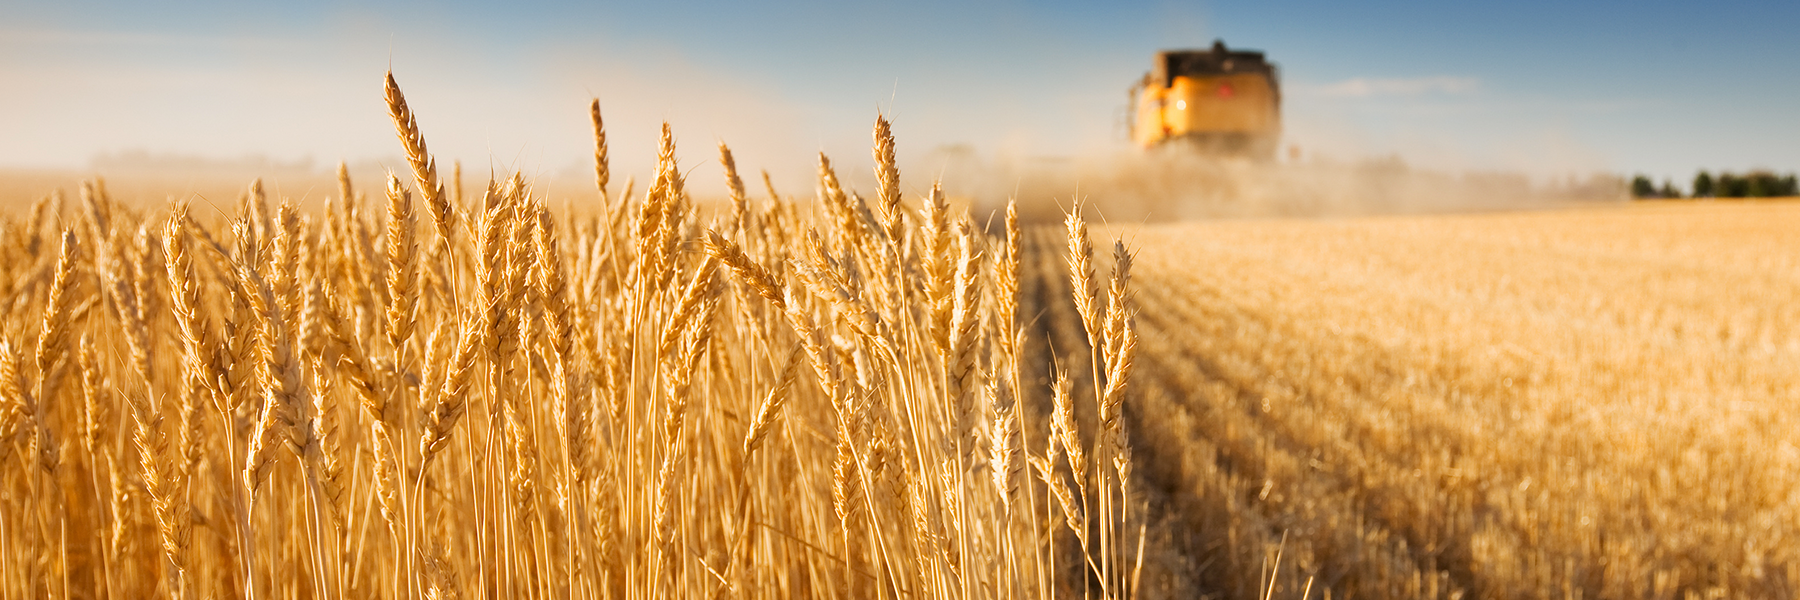 Cereals wheat